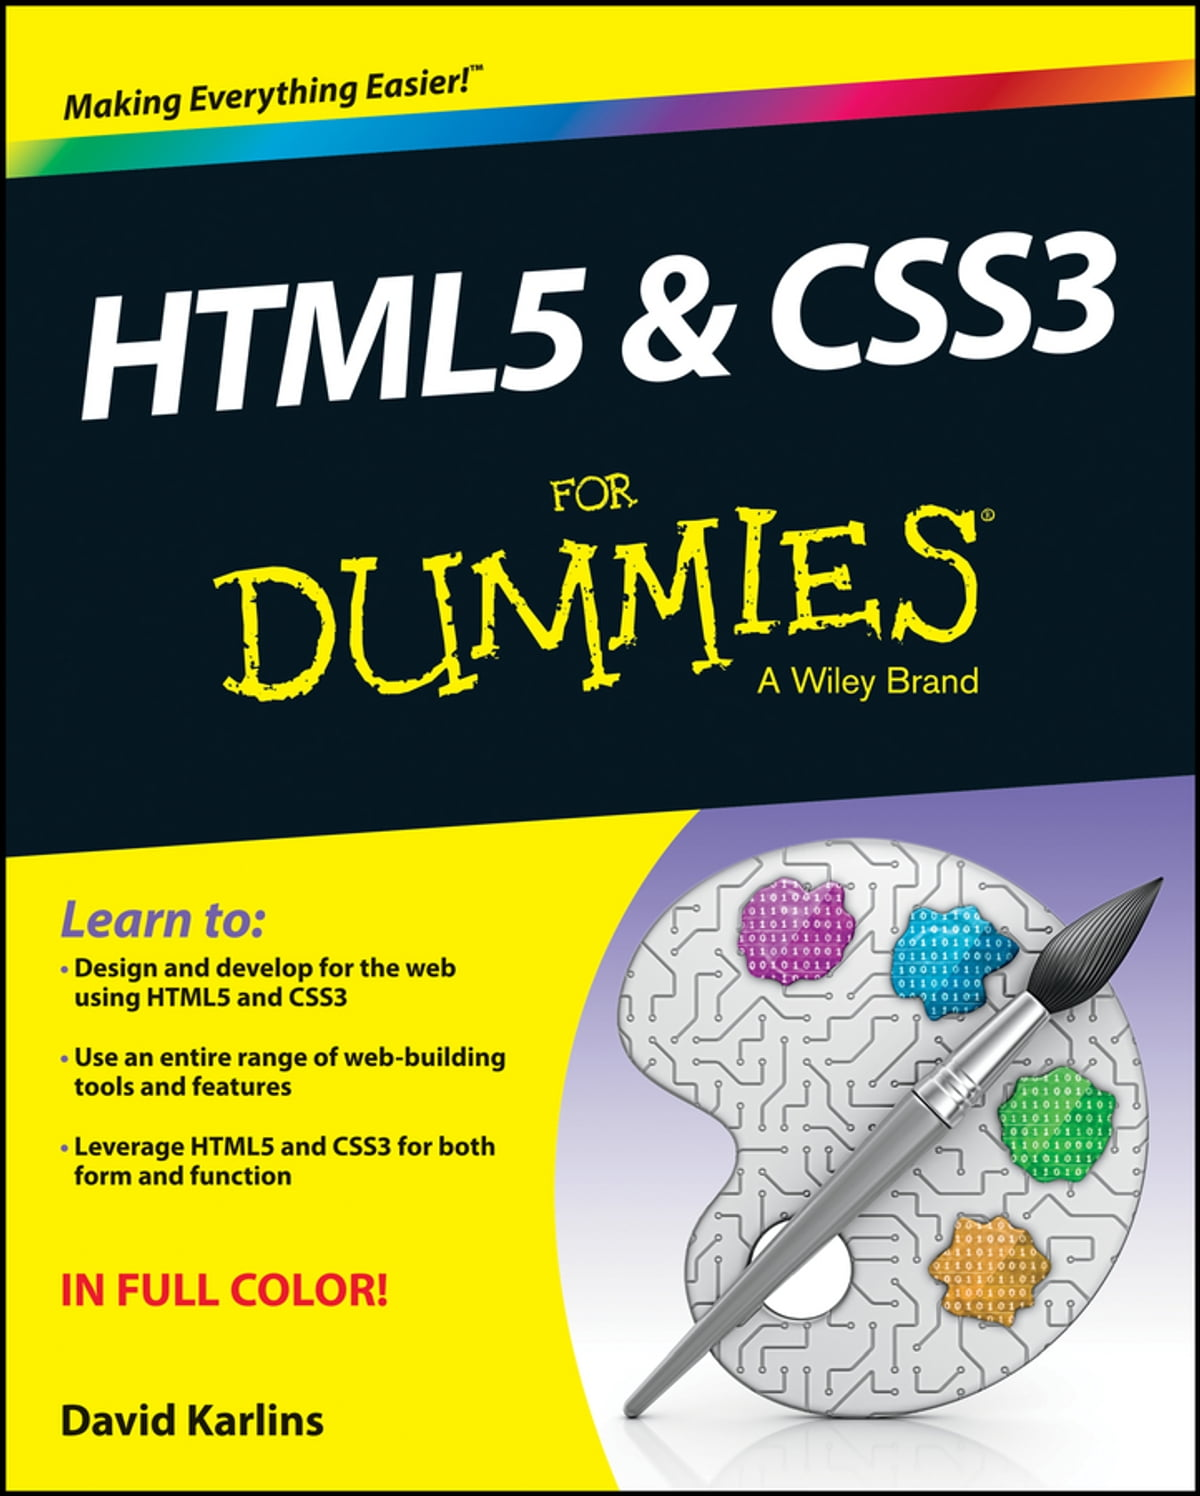 HTML5 and CSS3 For Dummies eBook by David Karlins - 9781118639412 | Rakuten  Kobo